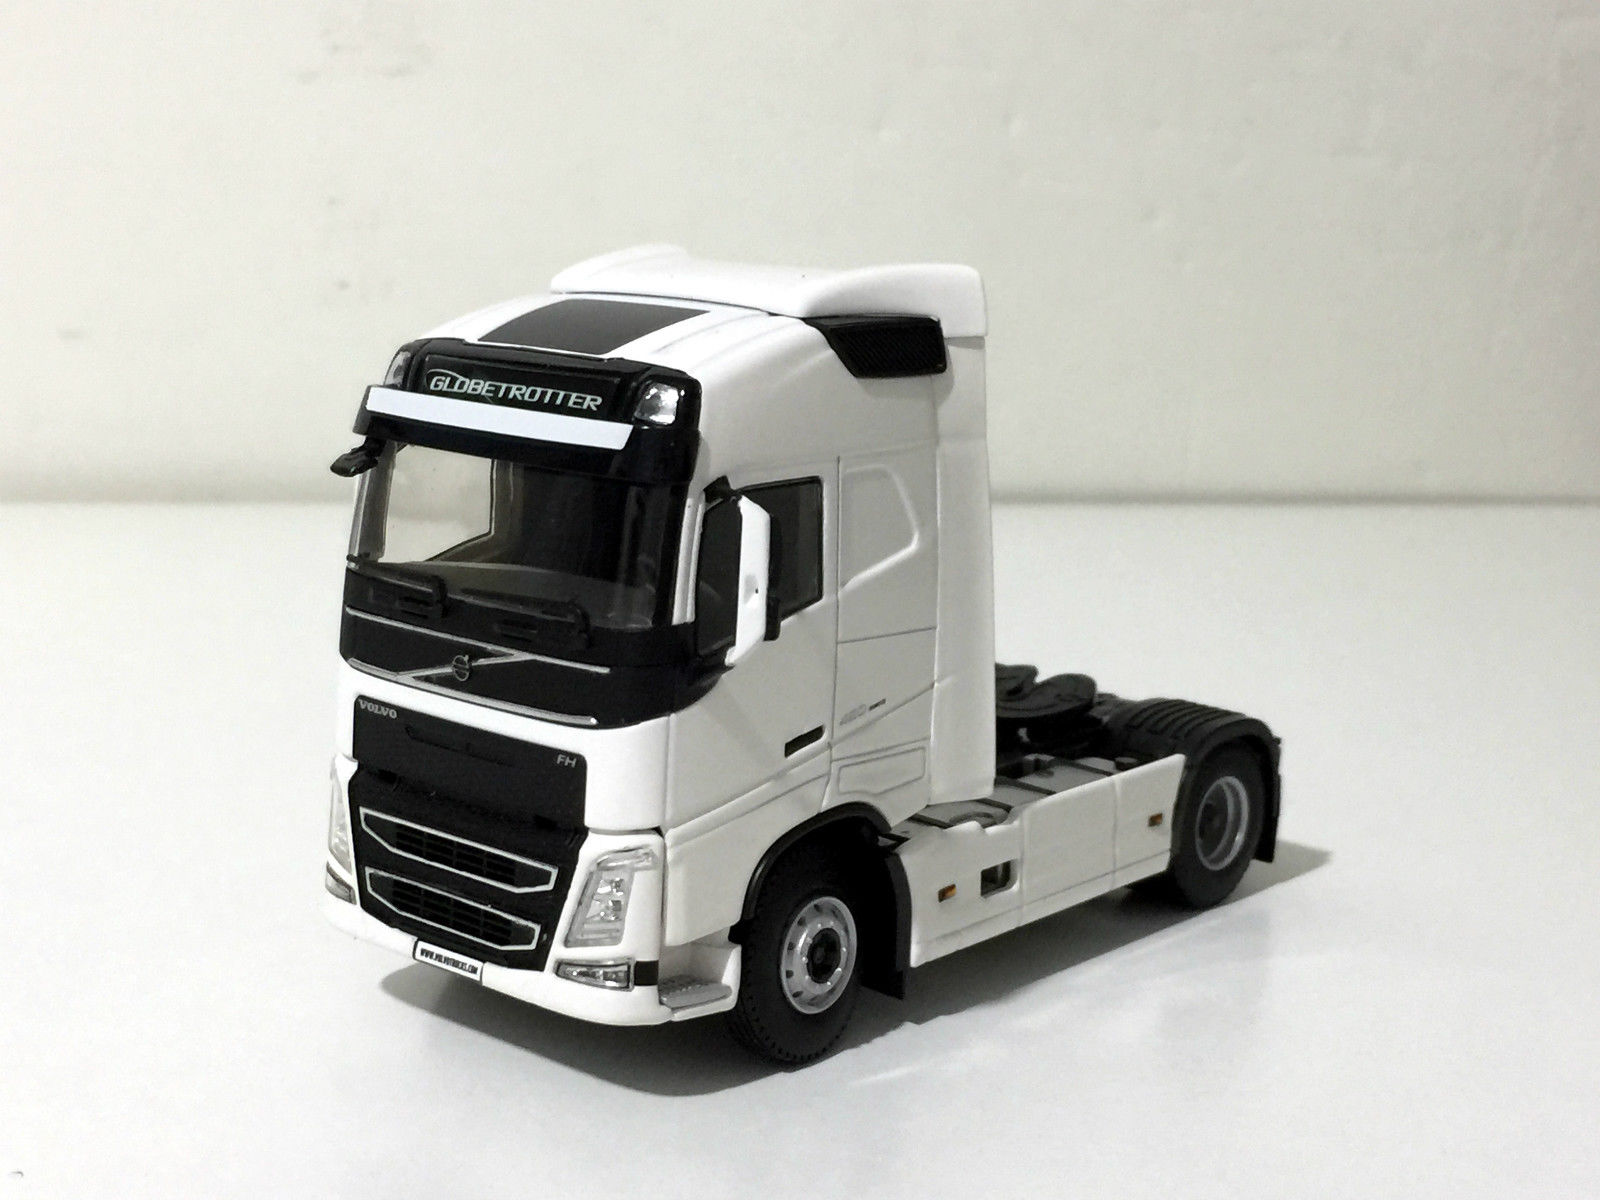 Collectible Alloy Toy Model WSI 1:50 Scale VOLVO FH4 GL 4X2 Truck Tractor Trailer Vehicles Diecast Toy Model For Decoration,Gift